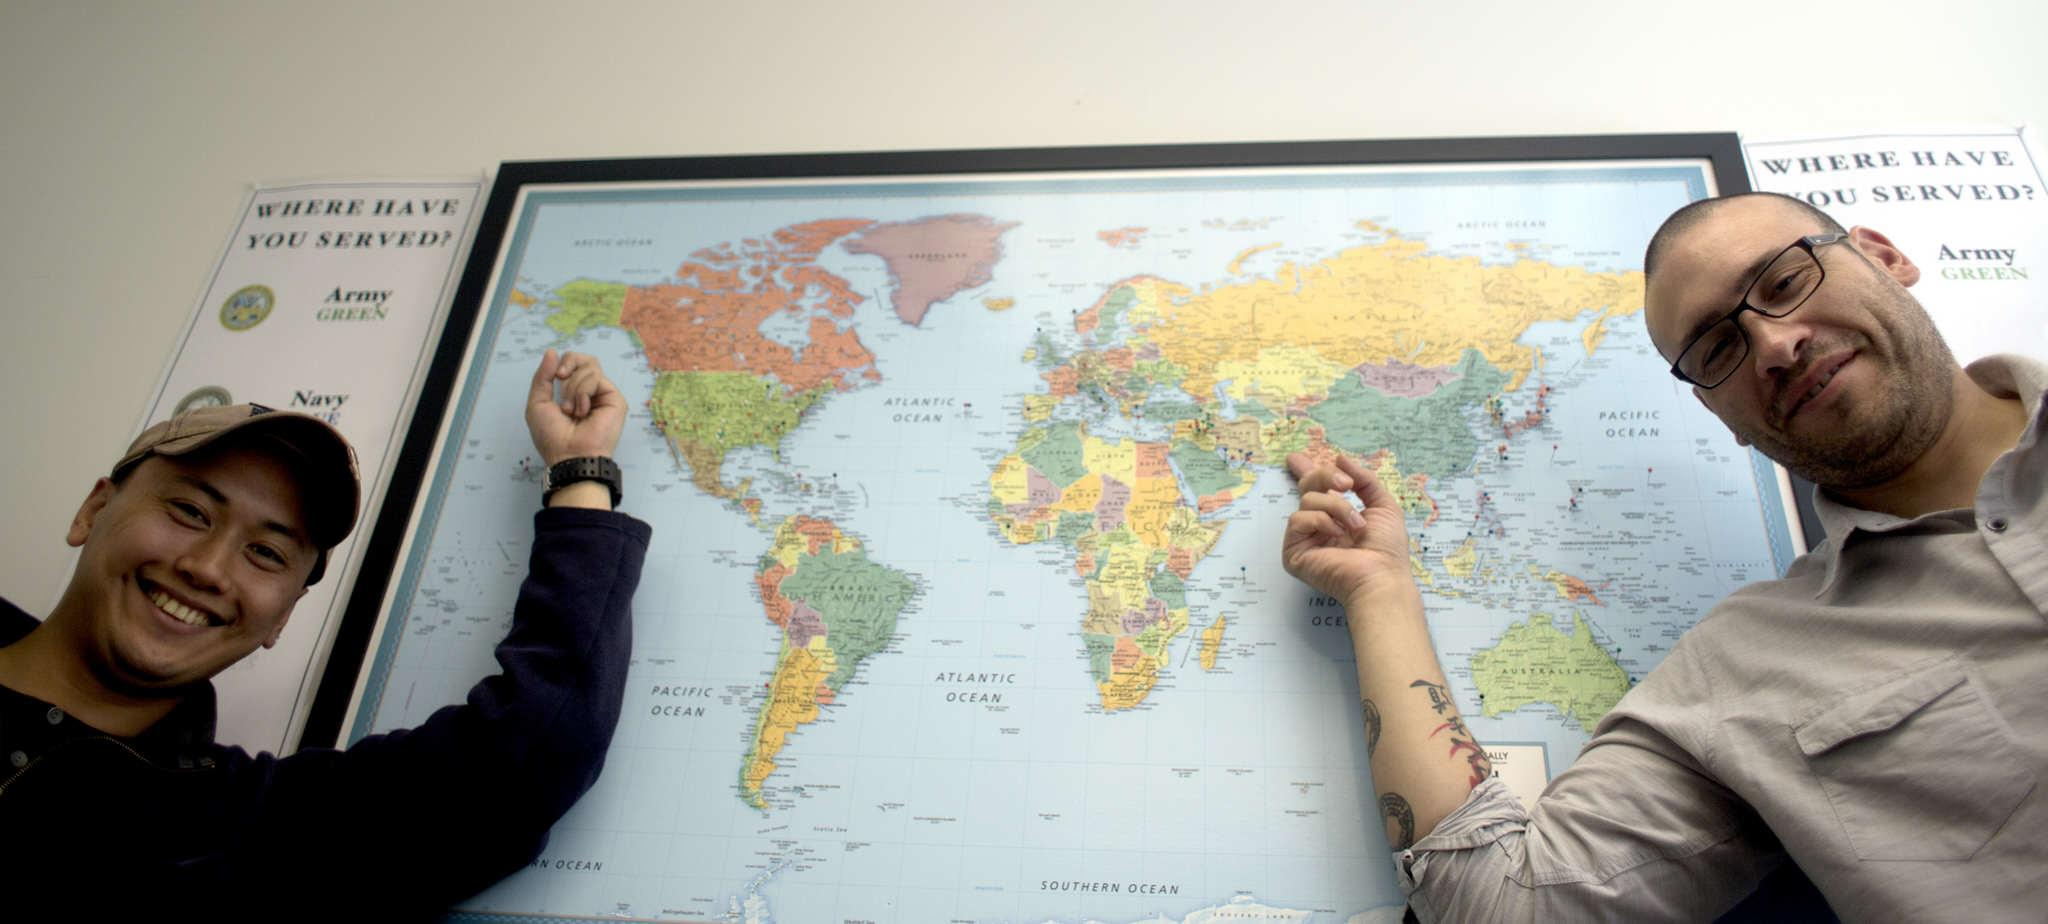 JP Sacramento, right, electrical engineering major and Veteran formally stationed in Alaska and Anthony Rueda, graduate student and Veteran formally stationed in Fort Bliss, Texas point to their stations locations on a map in the  Veterans Services Center at SF State Monday March 2. (Emma Chiang / Xpress)